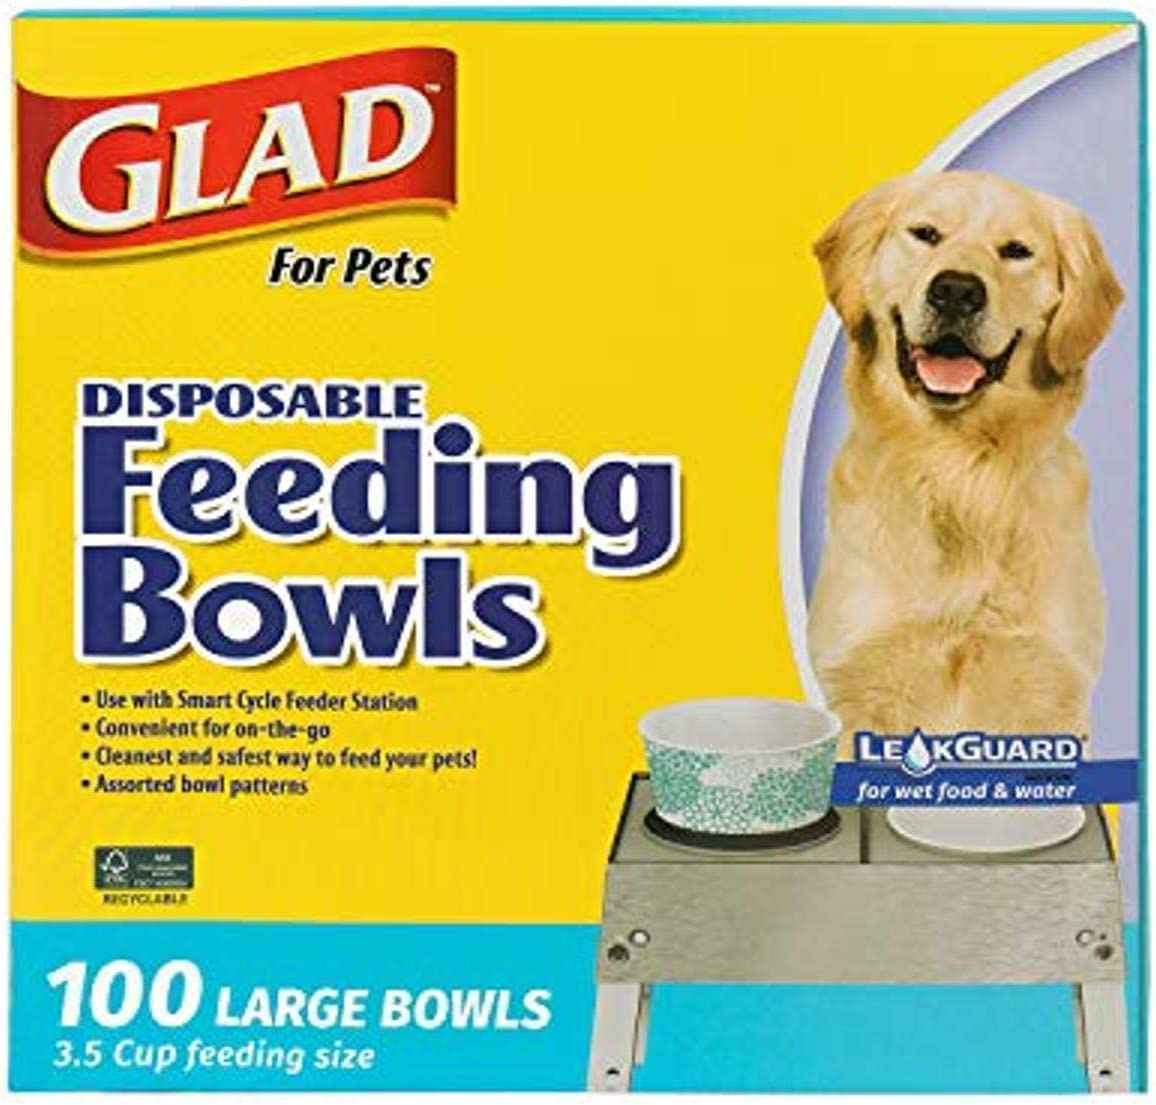 Glad for Pets Disposable Feeding Bowls